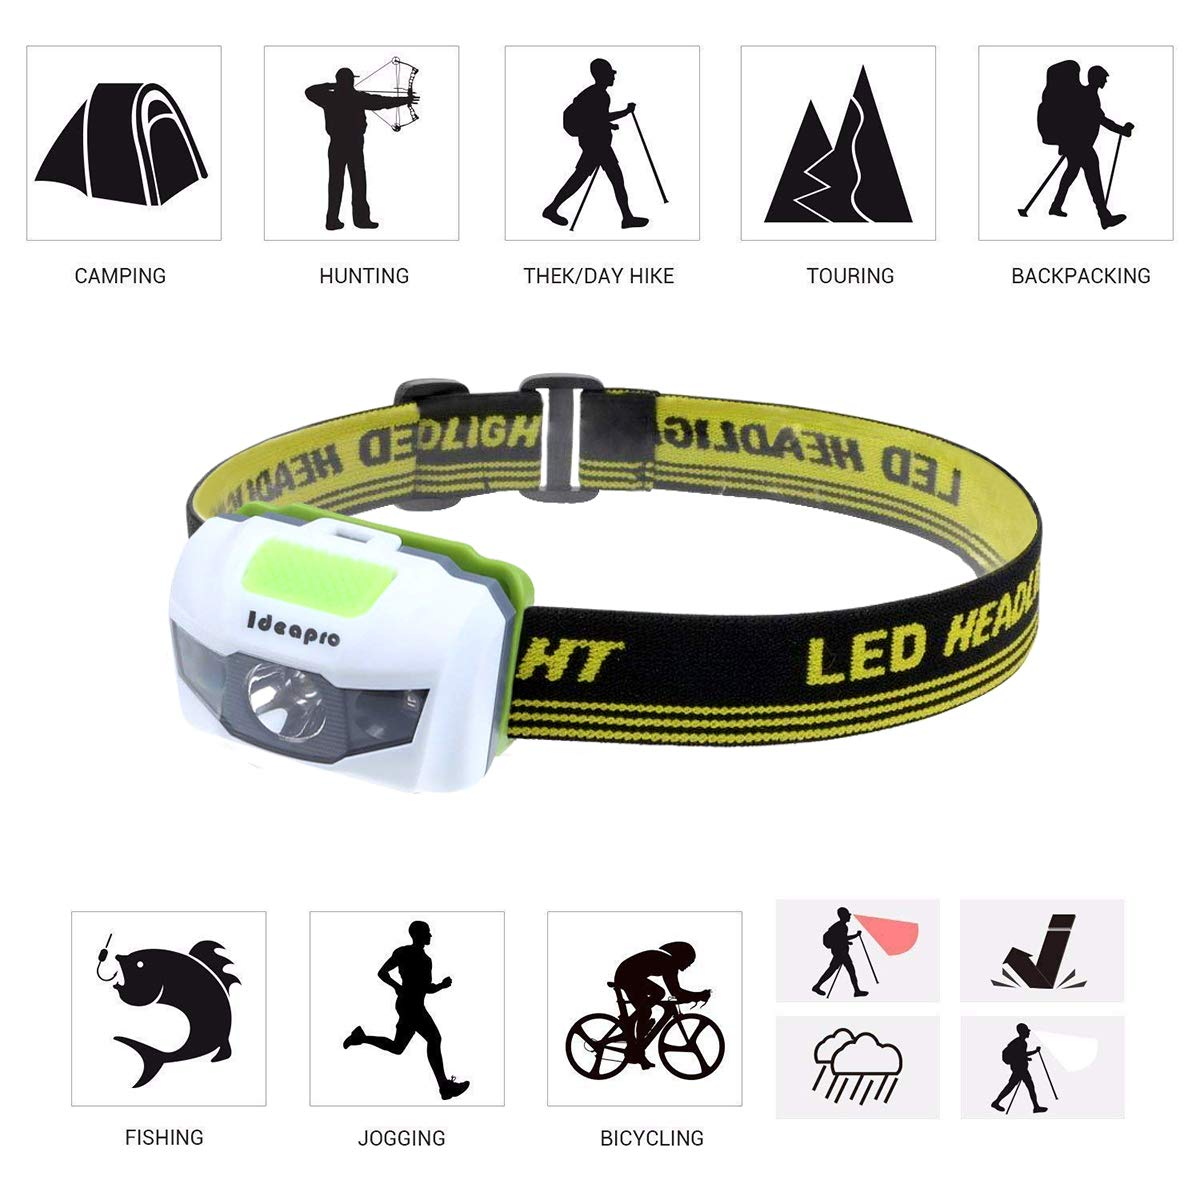 Ideapro LED Headlamp, 4 Lighting Modes Headlight, Battery Powered Headlamp Flashlight Brightest and Lightweight, Waterproof with Adjustable Headband and Flashing SOS Light for Camping Running 2 Pack by Ideapro (Image #5)